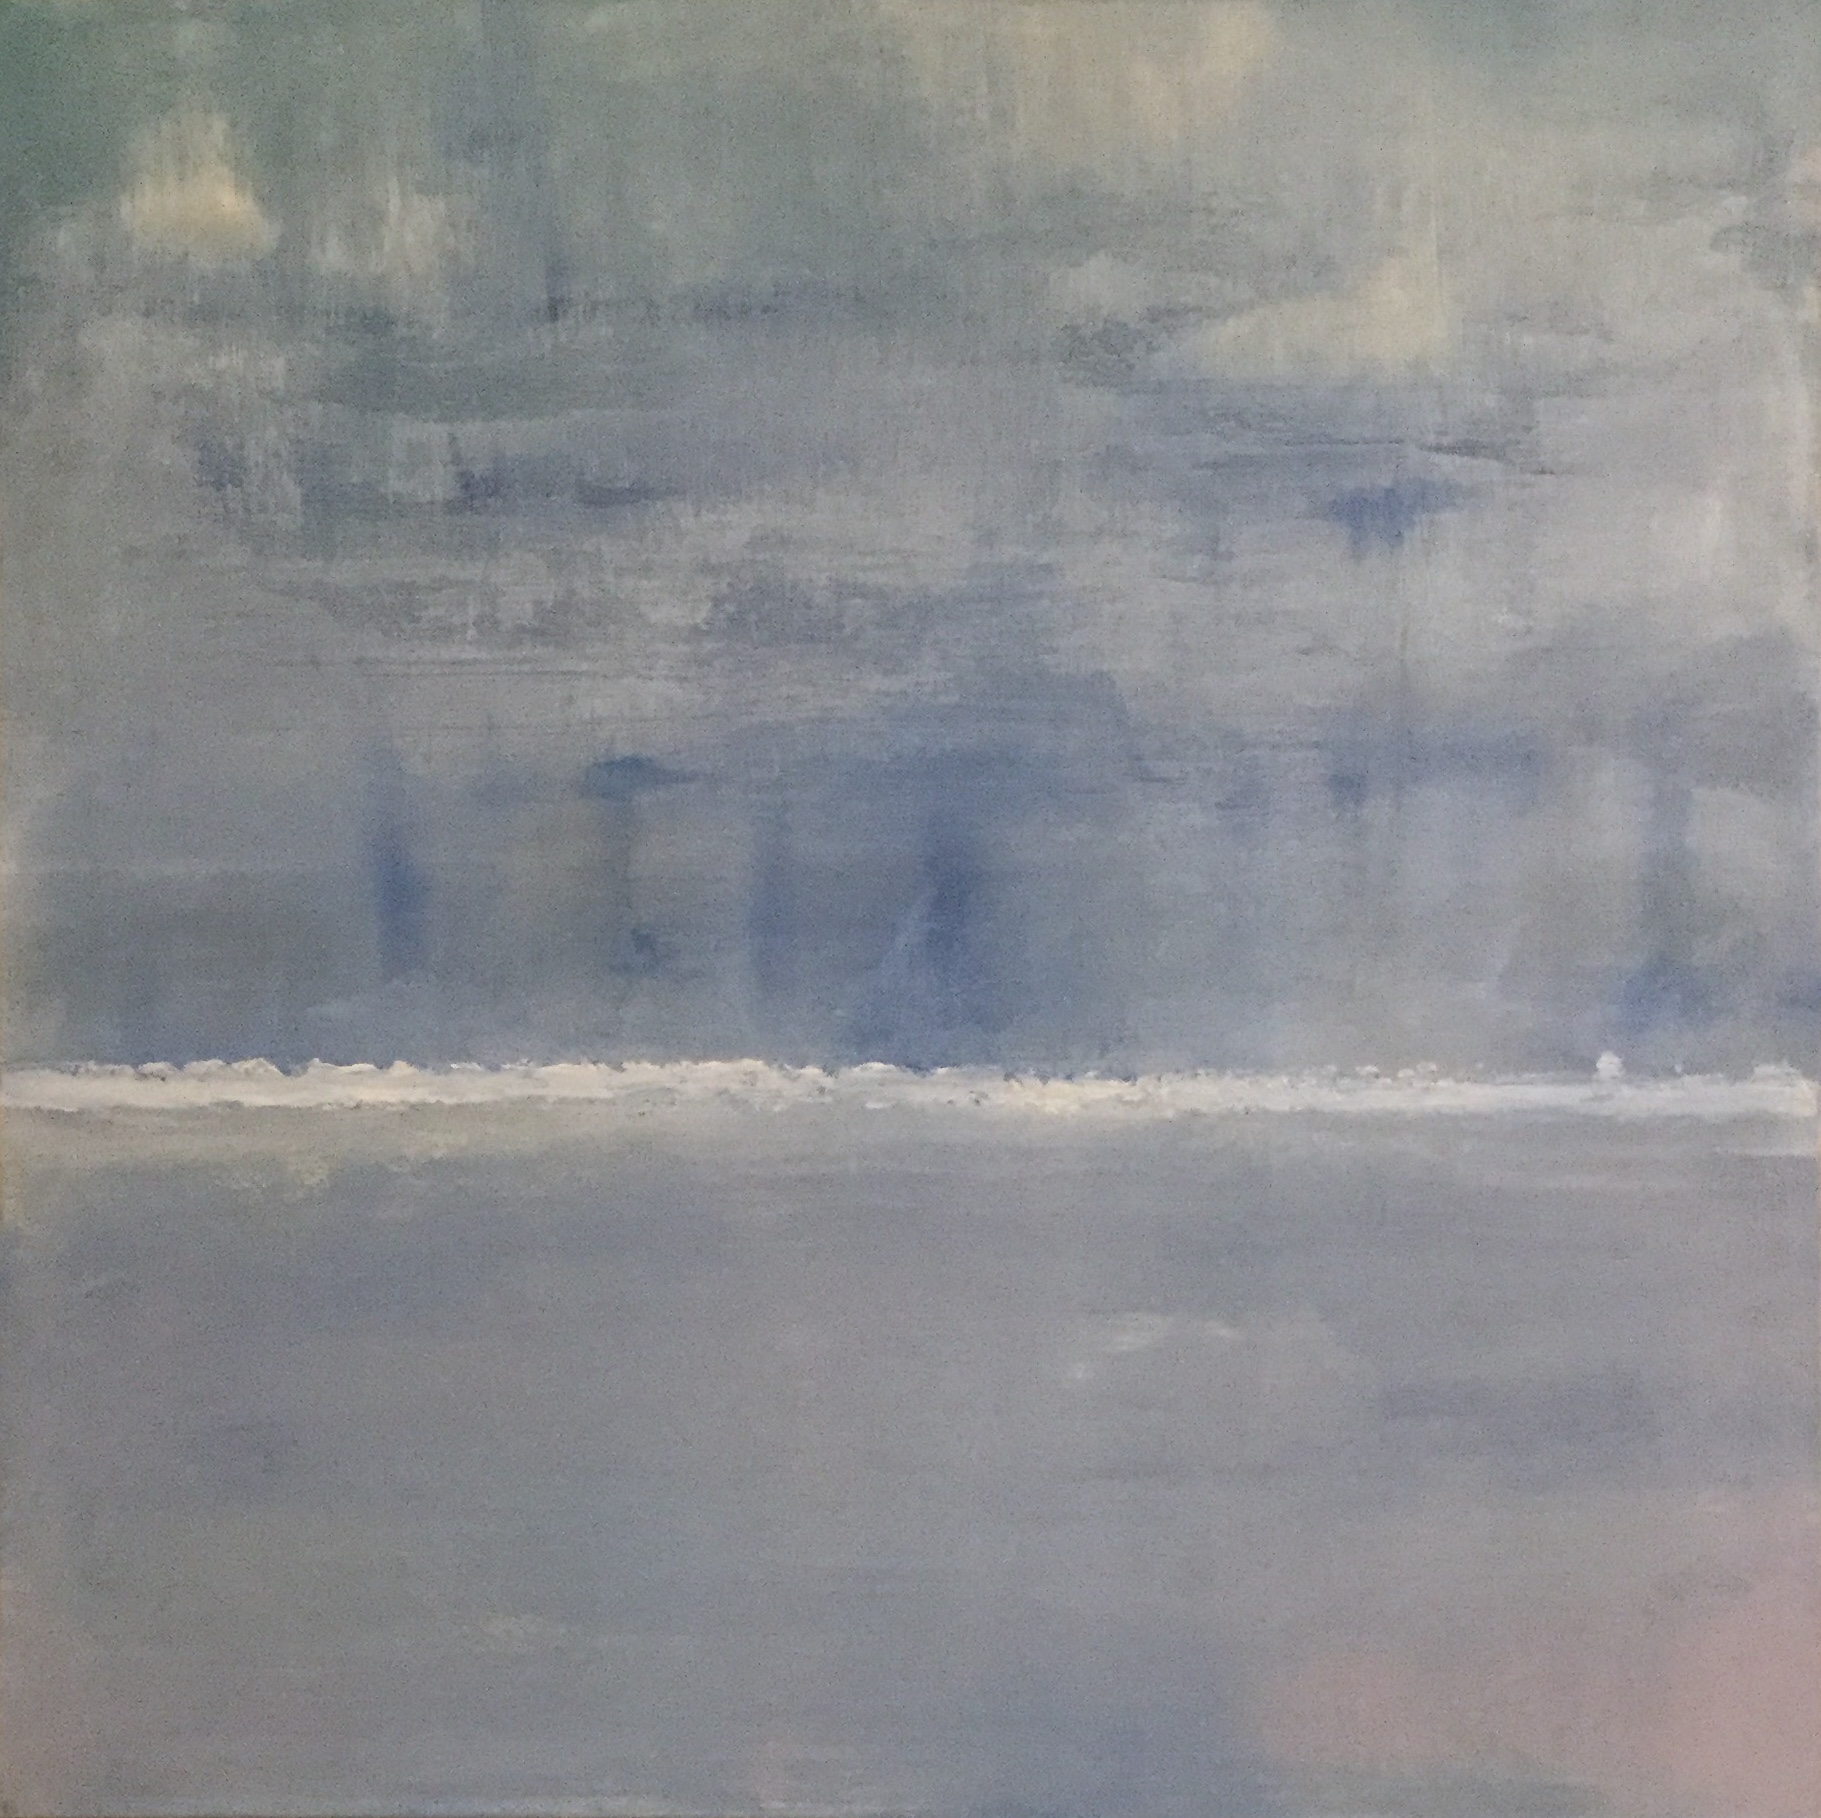 Solent Blue artwork by Renee Guercia - art listed for sale on Artplode